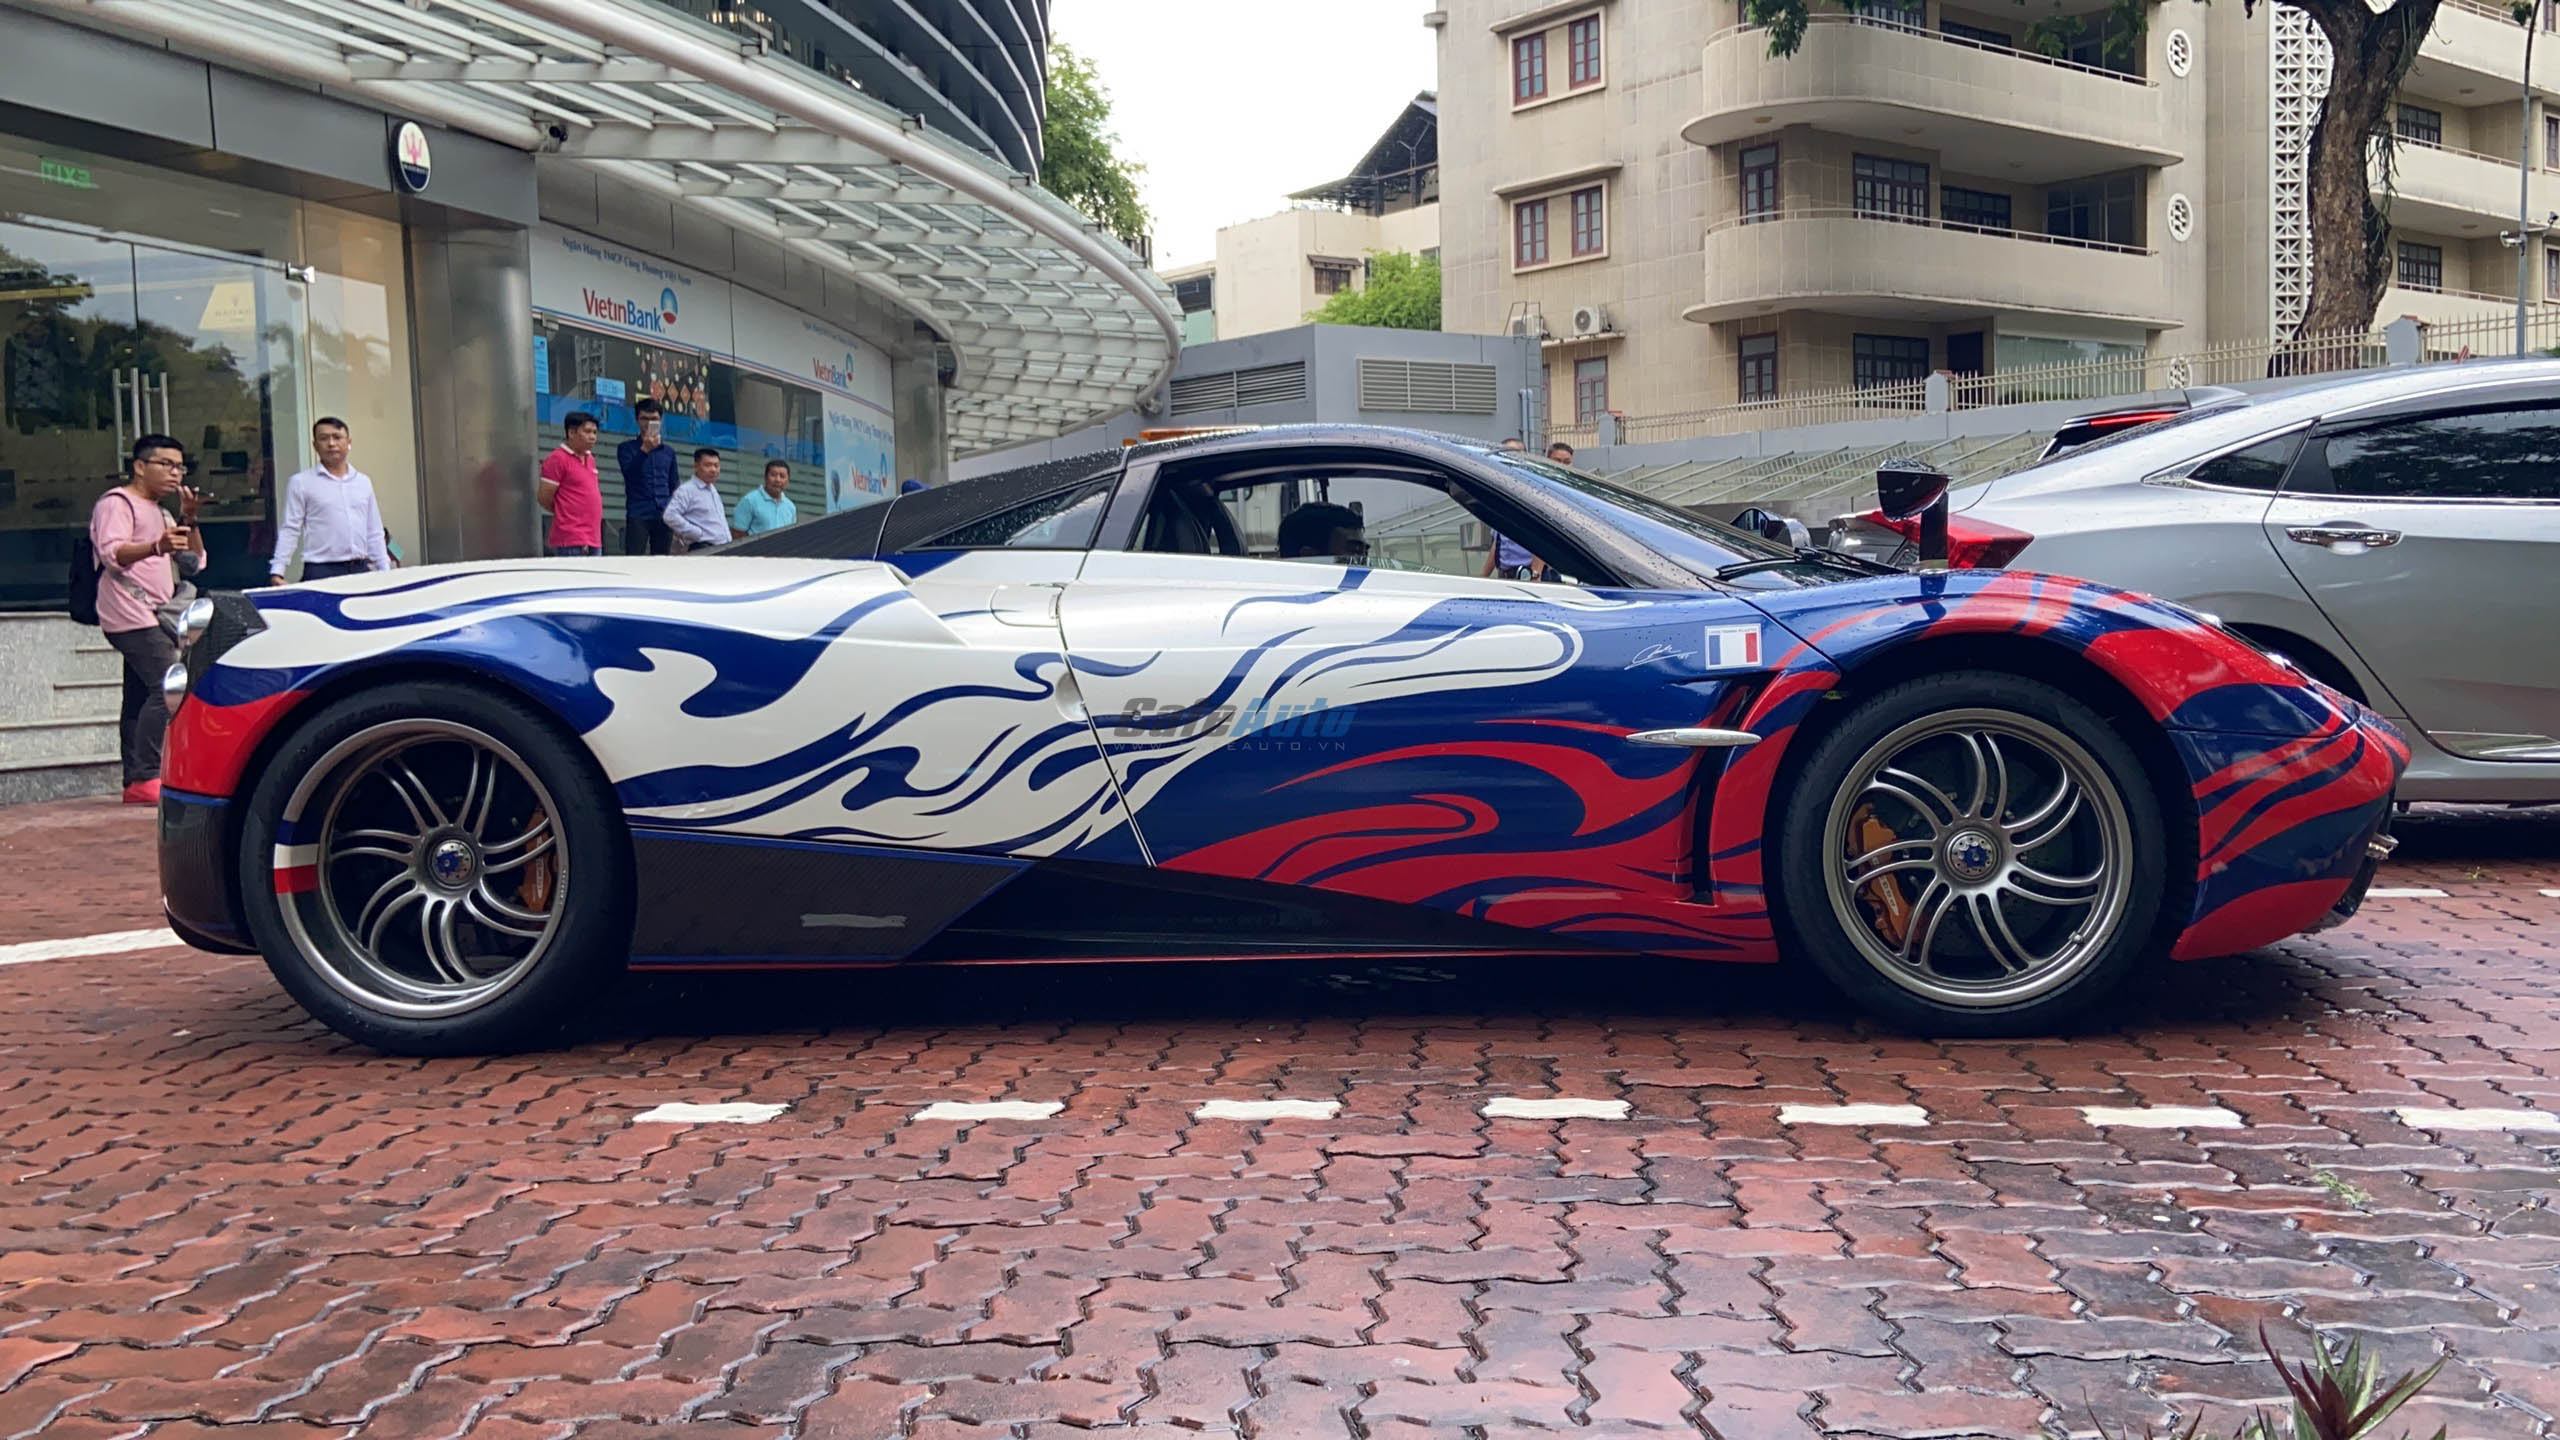 paganihuayra-cafeautovn-27